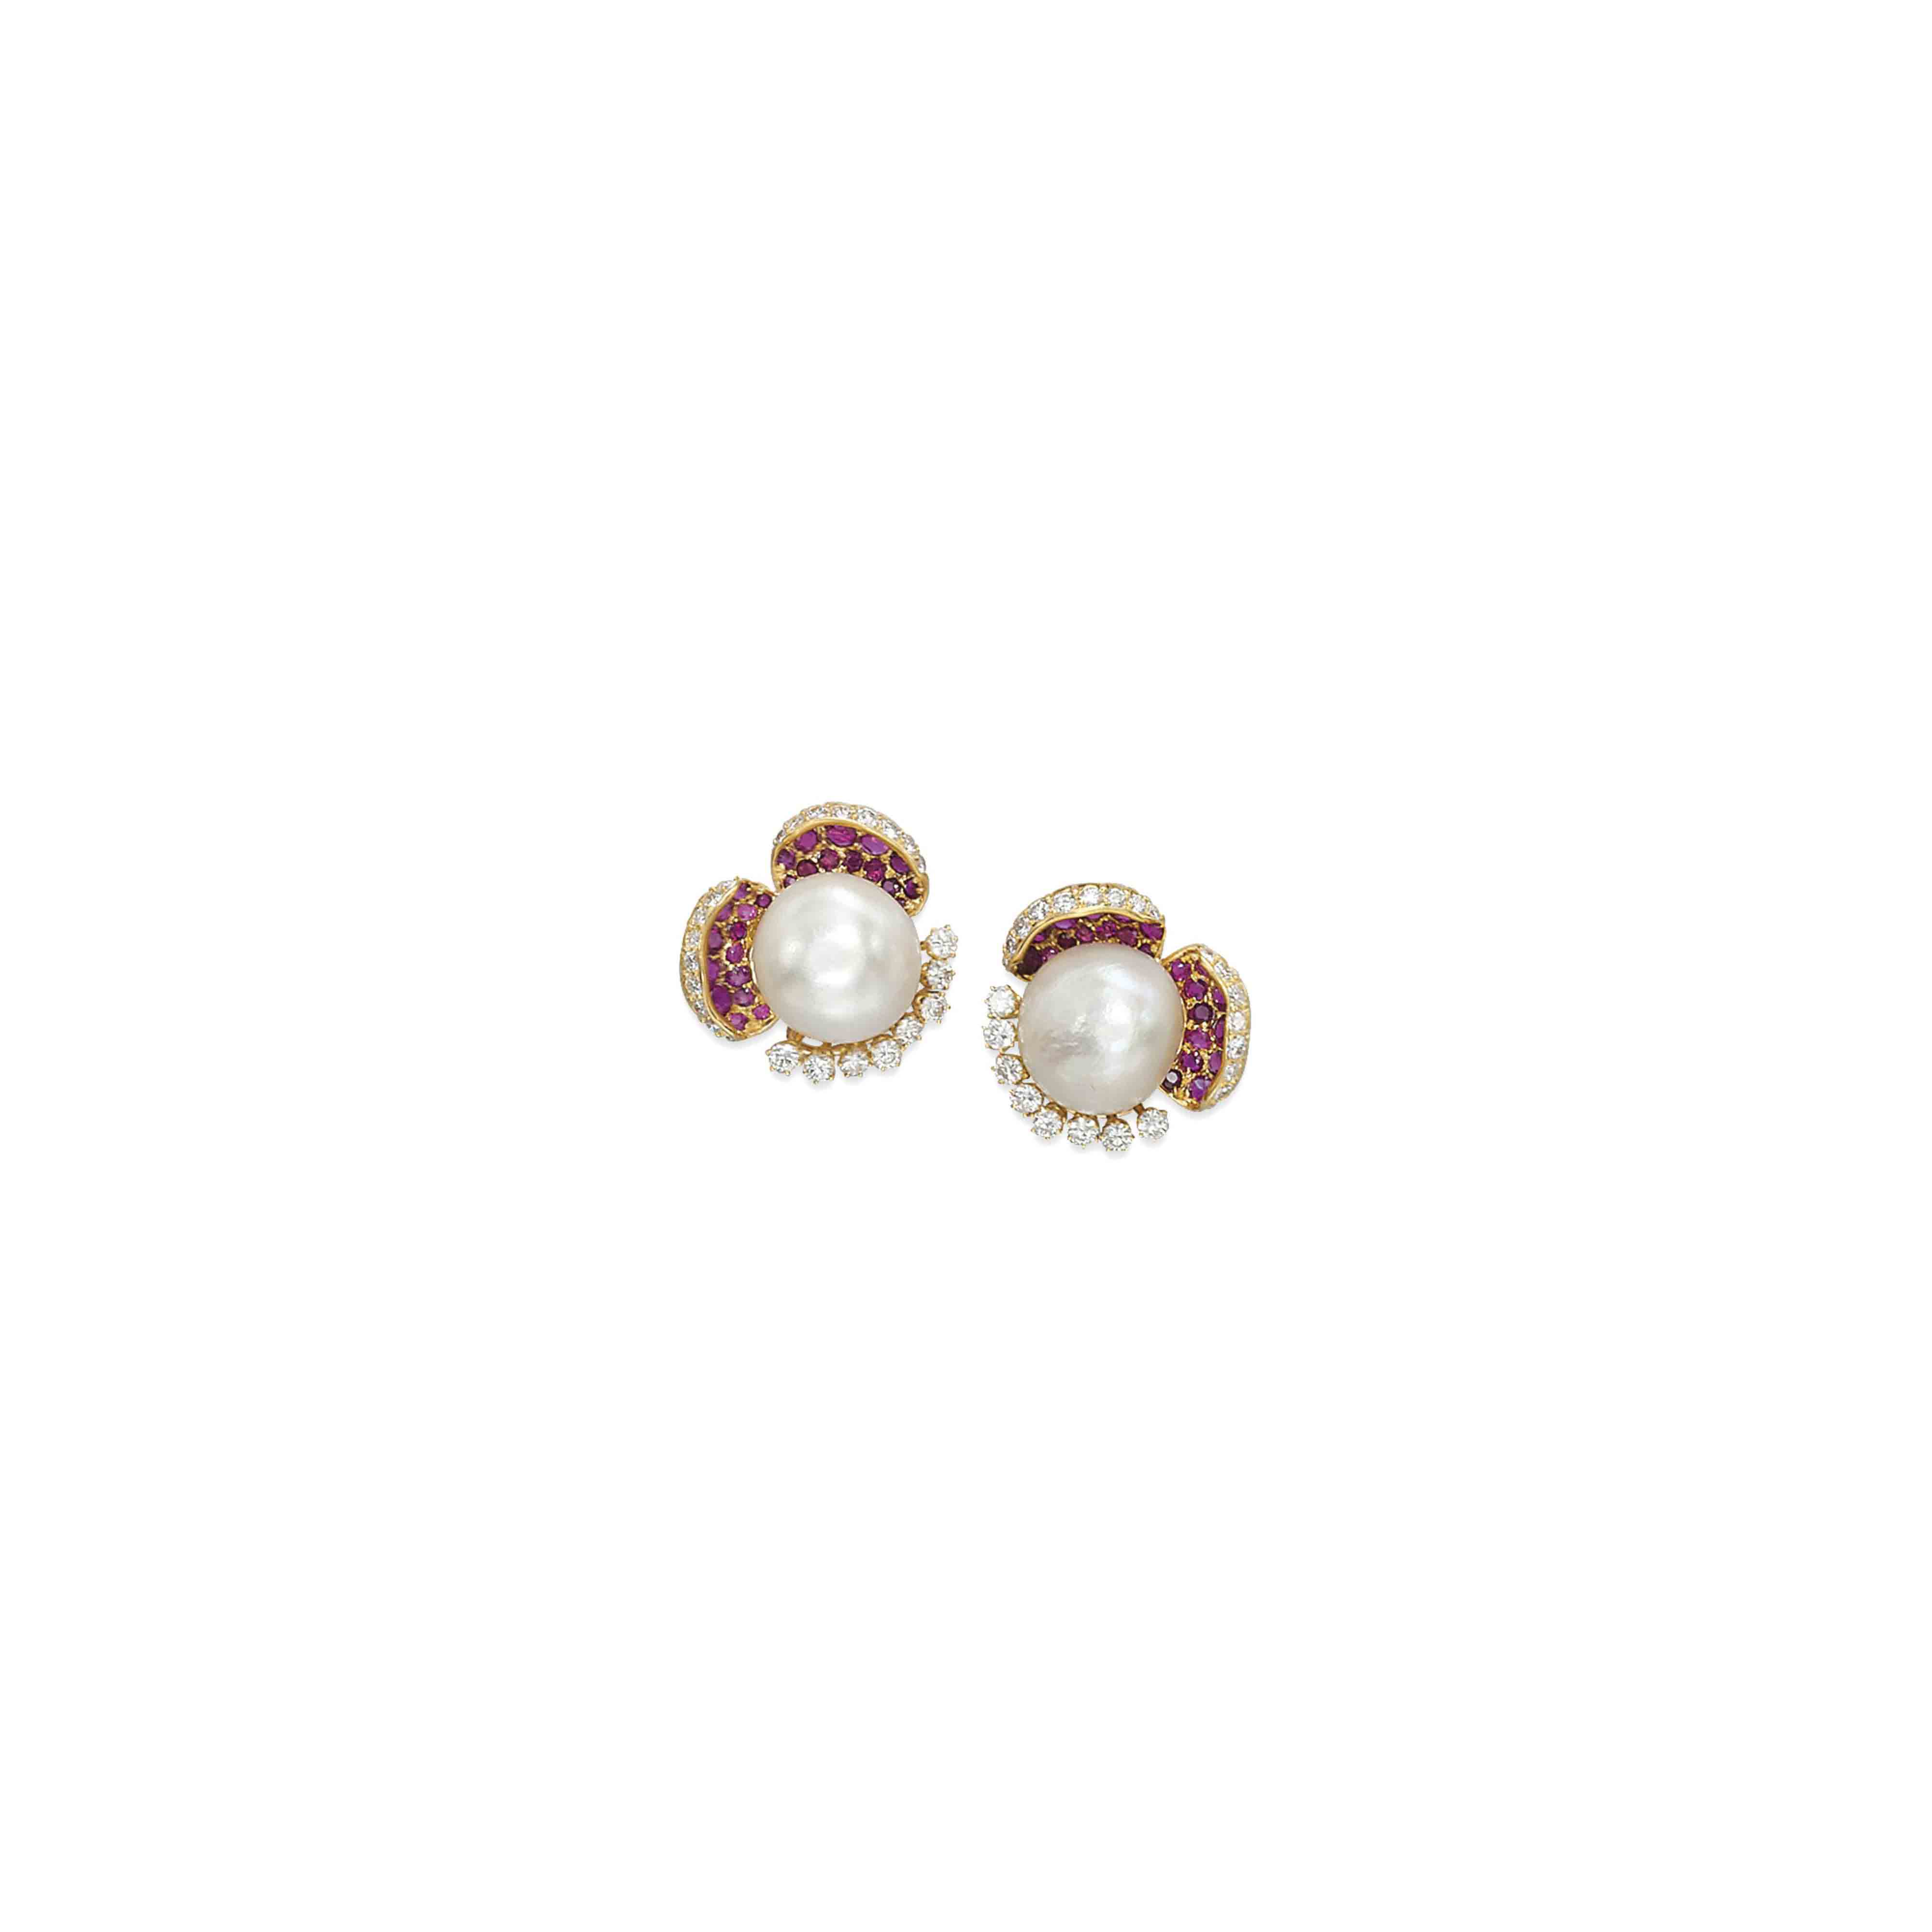 A PAIR OF PEARL, RUBY AND DIAMOND EAR CLIPS, BY LOMBARD